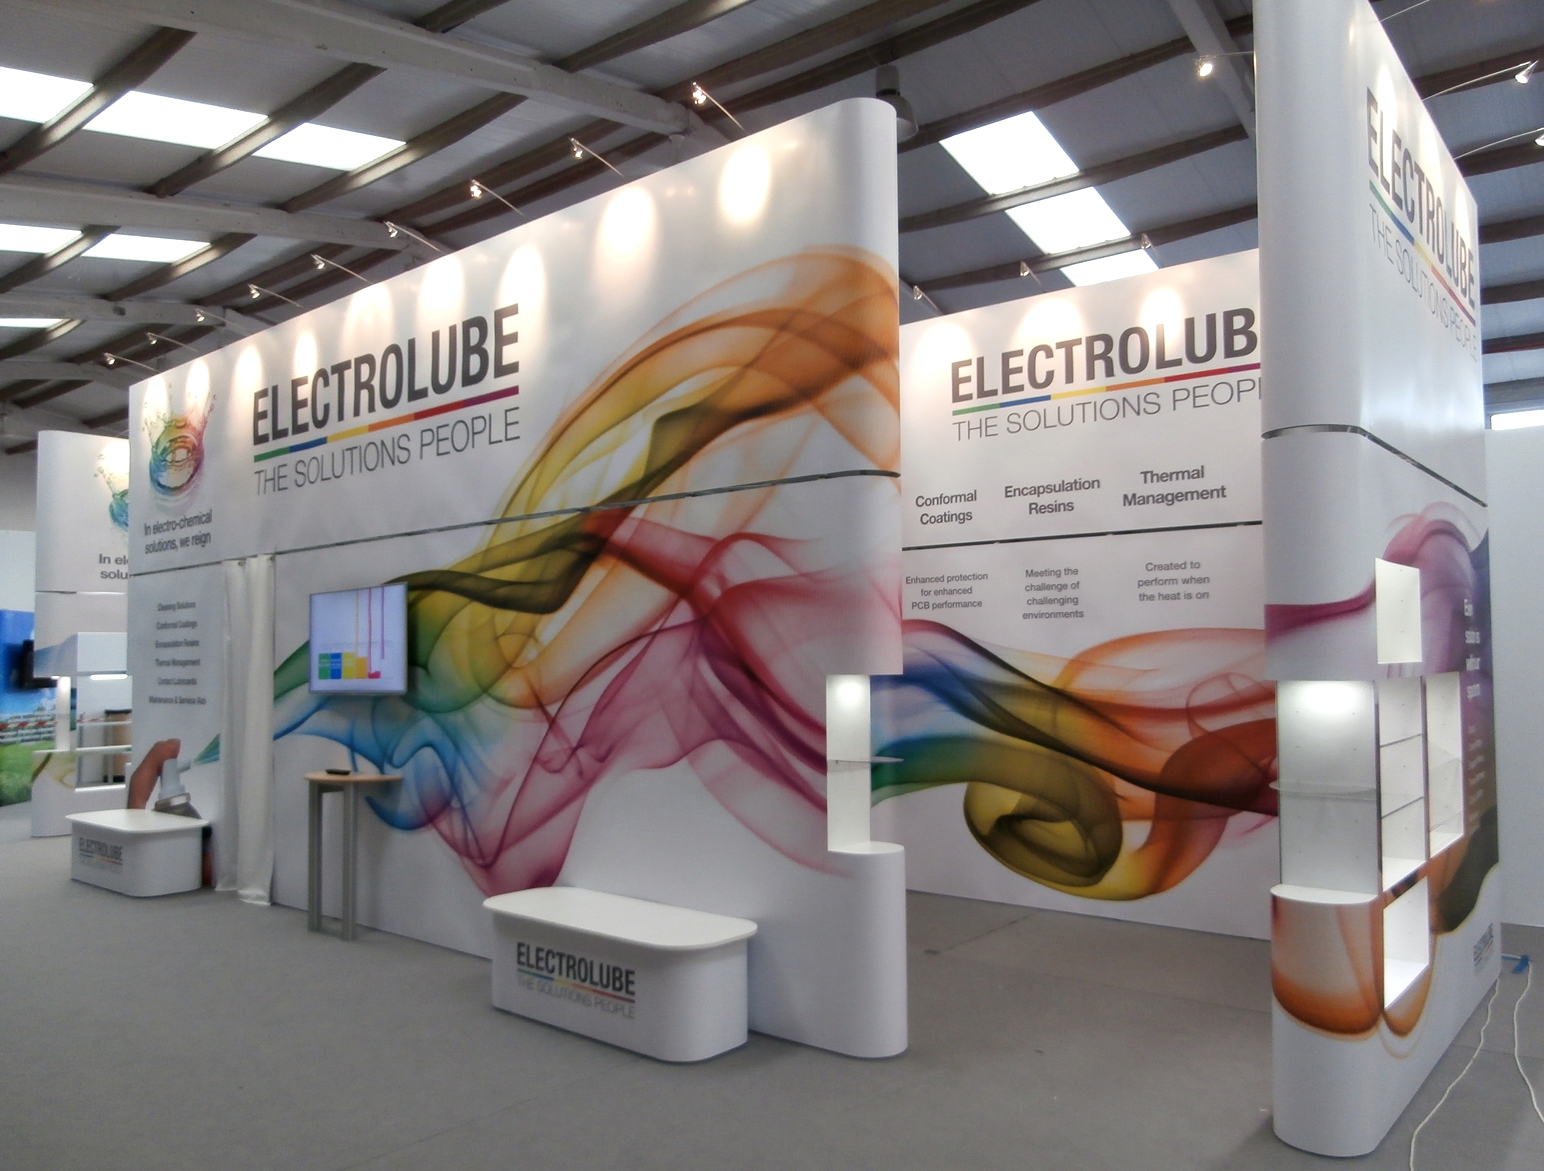 Modular Exhibition Stand Uk : Christmas opening day at quadrant2design; see the uks largest